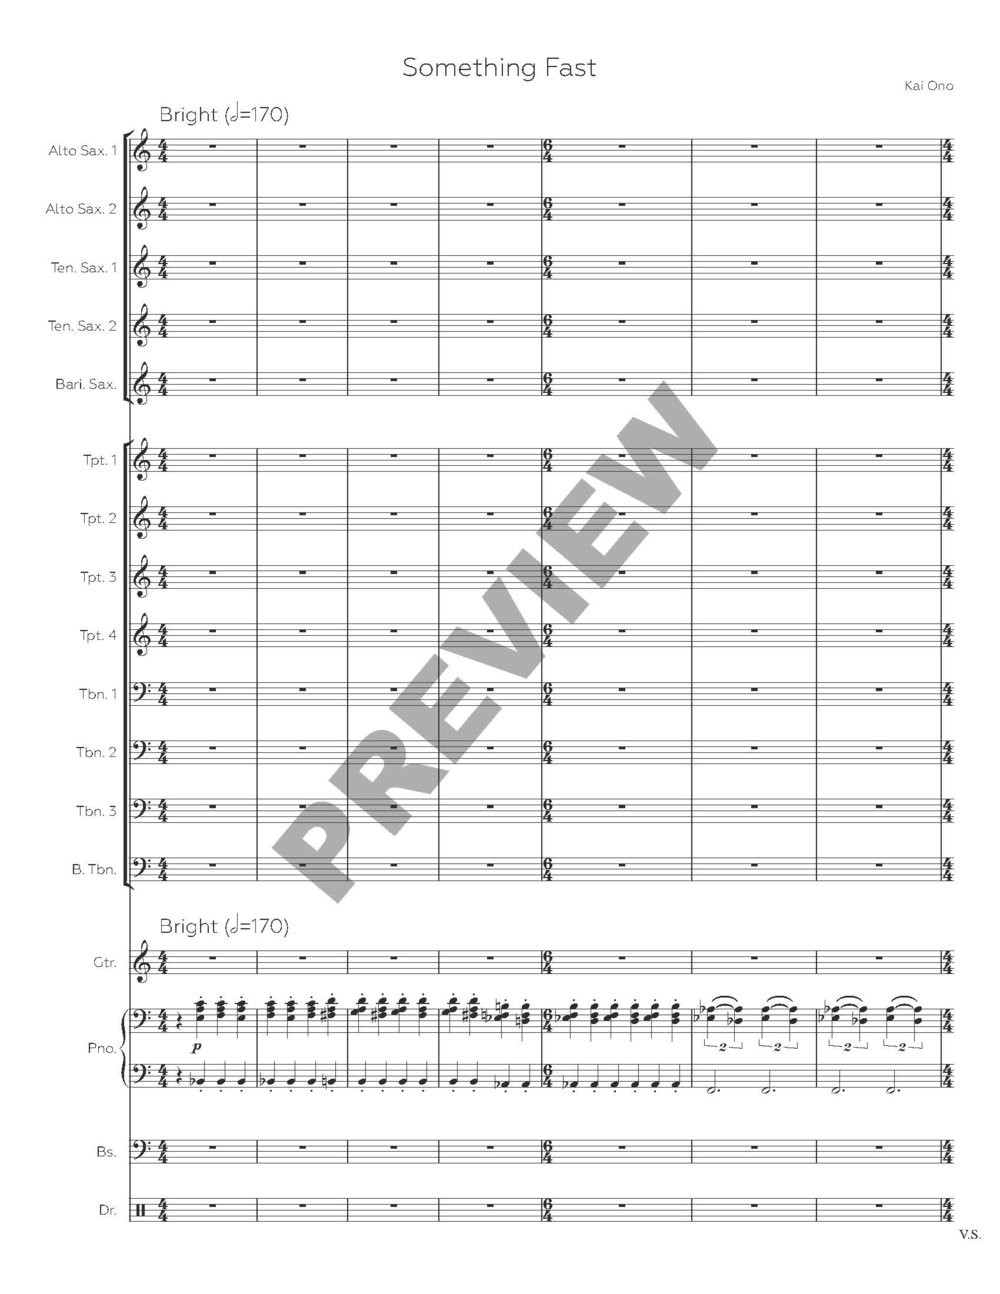 Something Fast - Full Score_Page_03.jpg